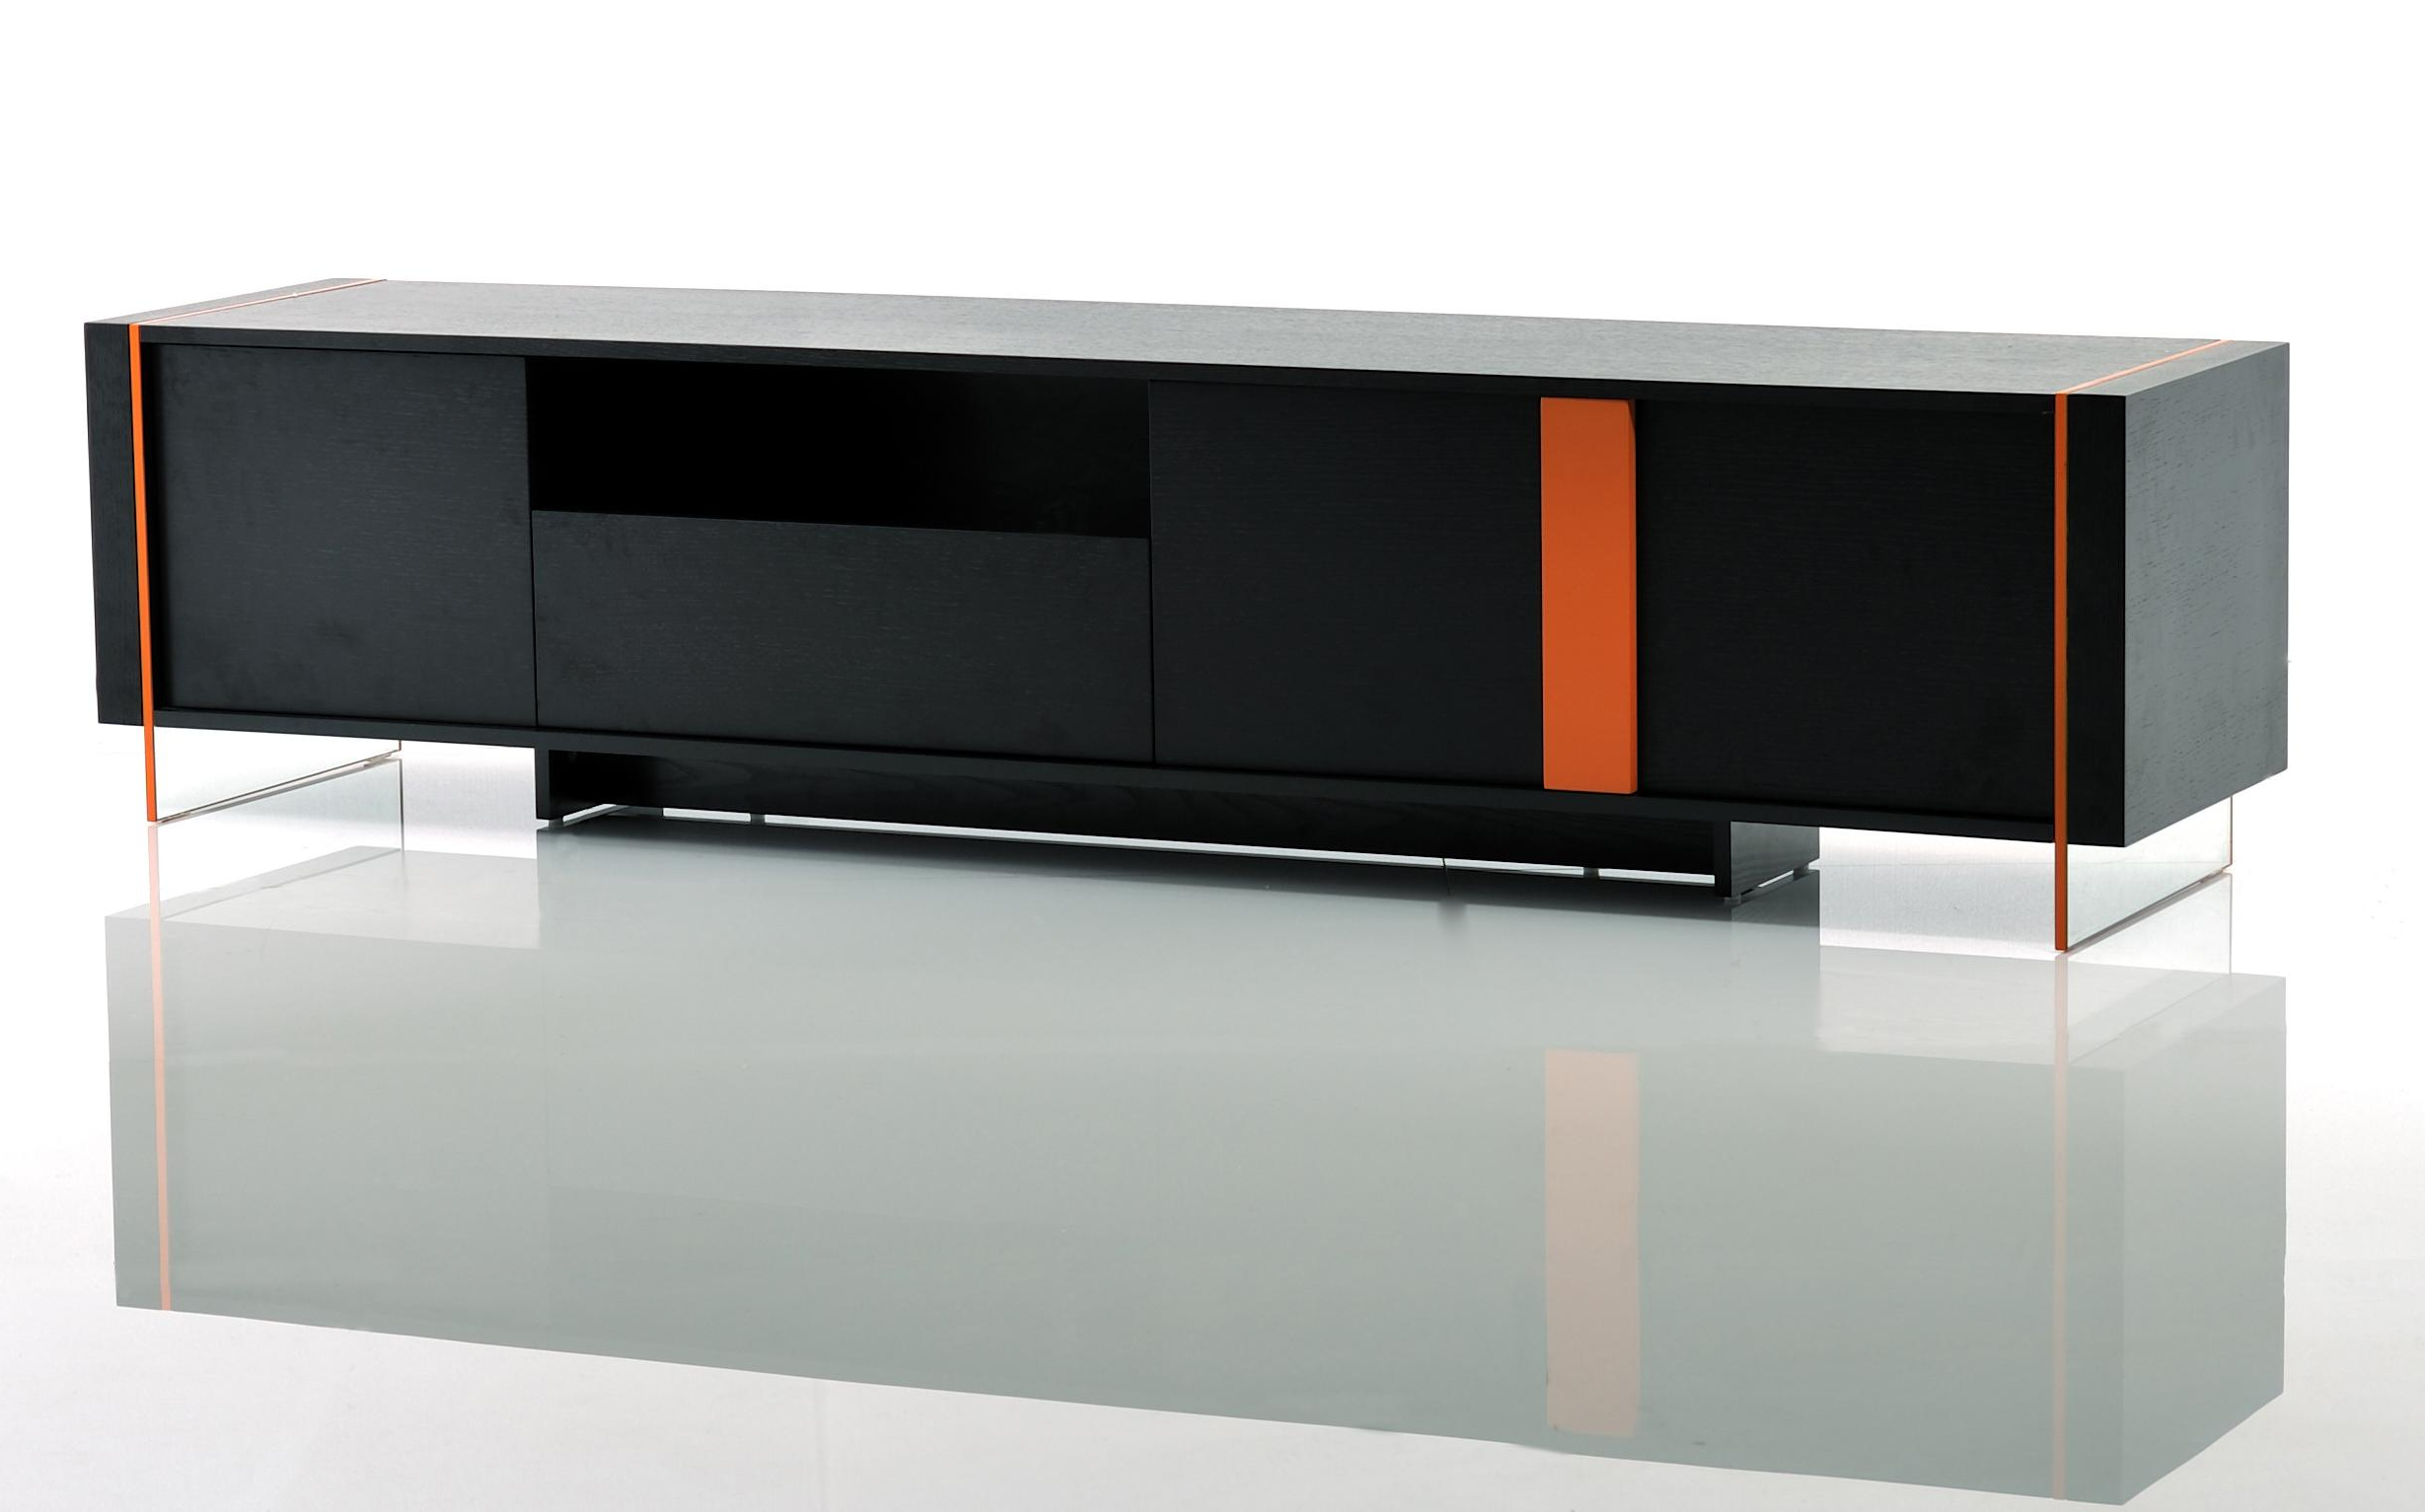 Contemporary Black Oak And Orange Floating Tv Stand Austin Texas Vvis Intended For Most Recently Released Contemporary Modern Tv Stands (Gallery 10 of 20)